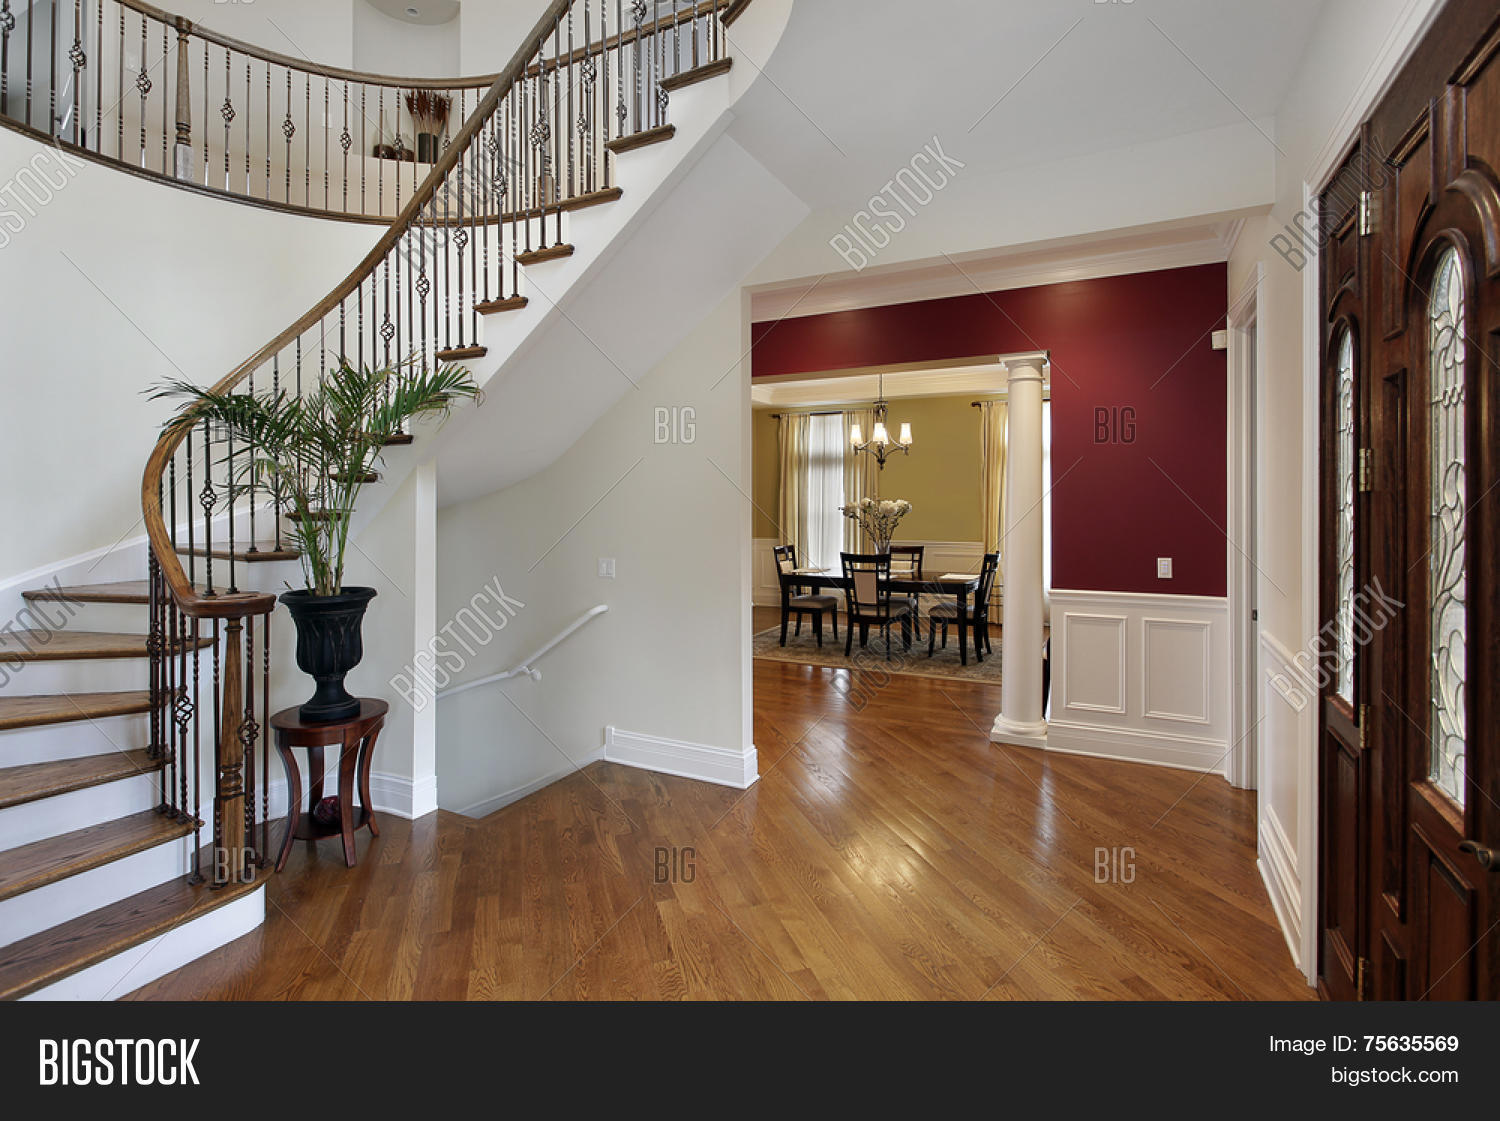 Luxury Home Foyer : Foyer luxury home curved staircase image photo bigstock